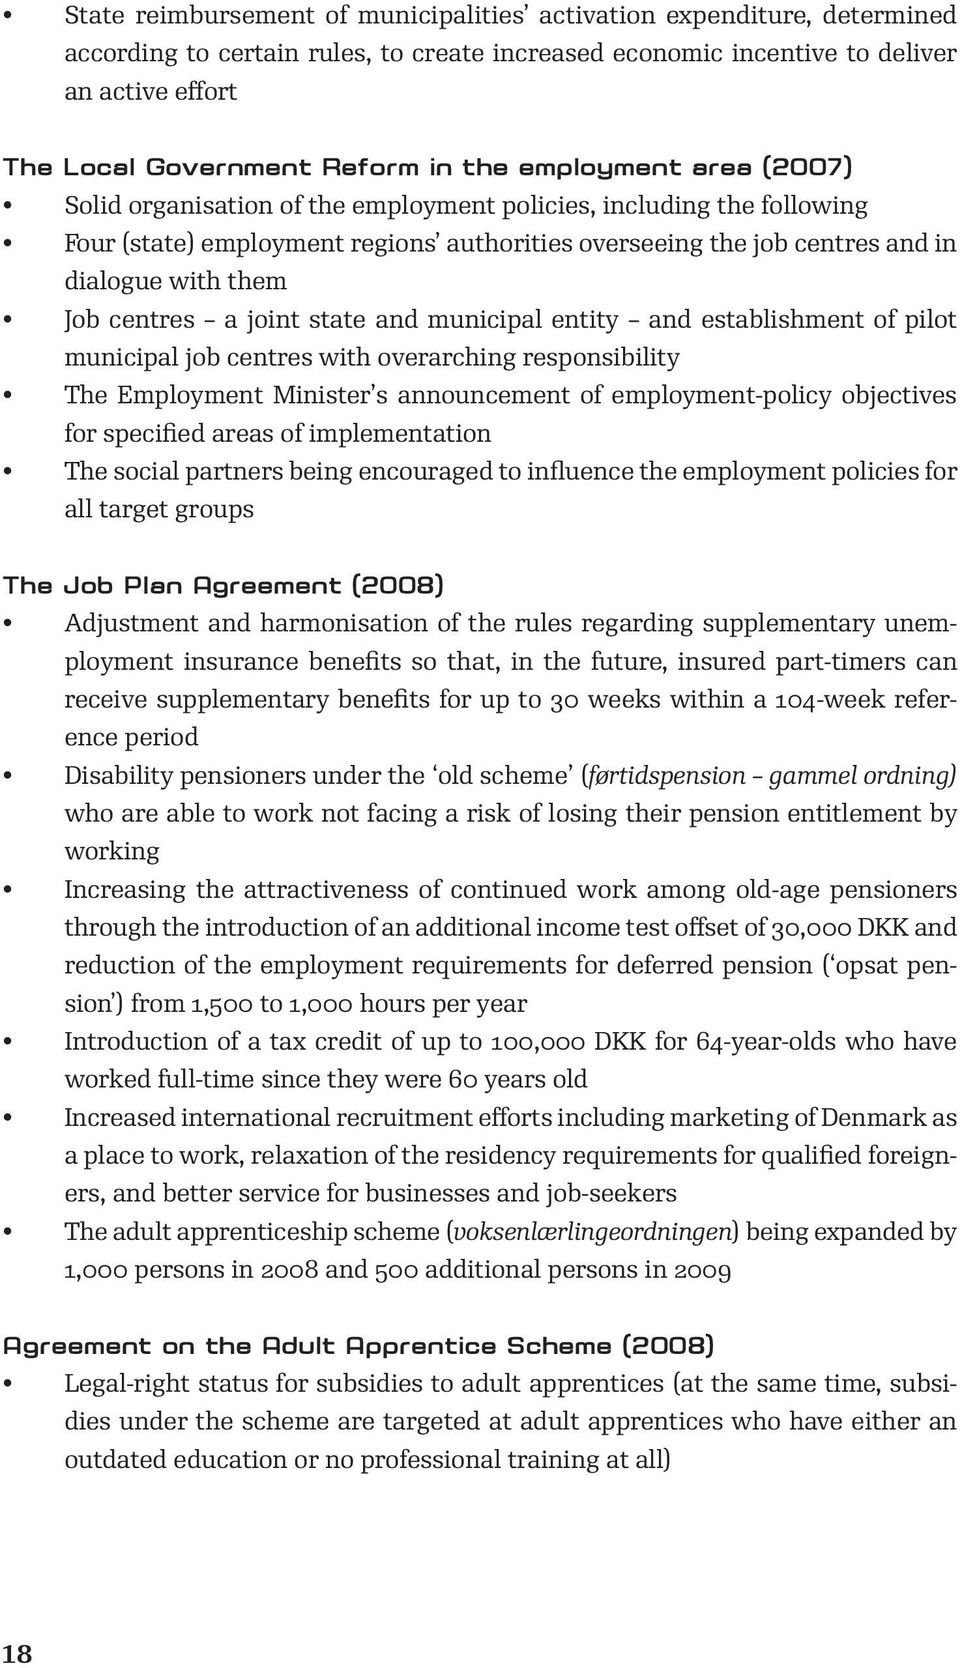 centres a joint state and municipal entity and establishment of pilot municipal job centres with overarching responsibility The Employment Minister s announcement of employment-policy objectives for